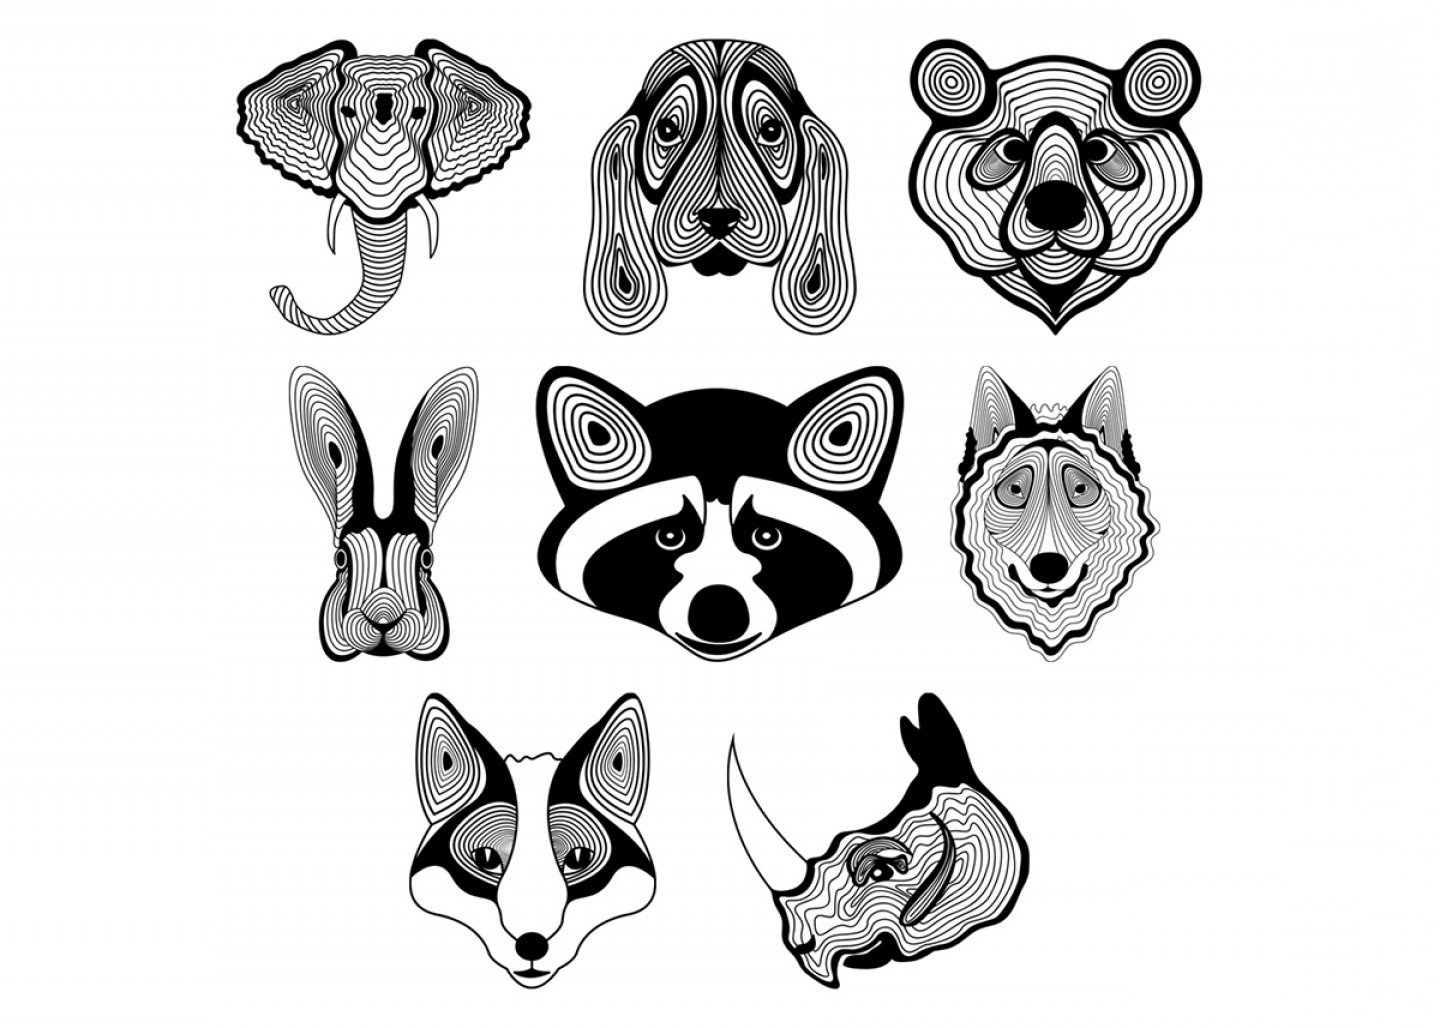 Free Vector Download Sites: Animal Faces Illustration Free Vector Download